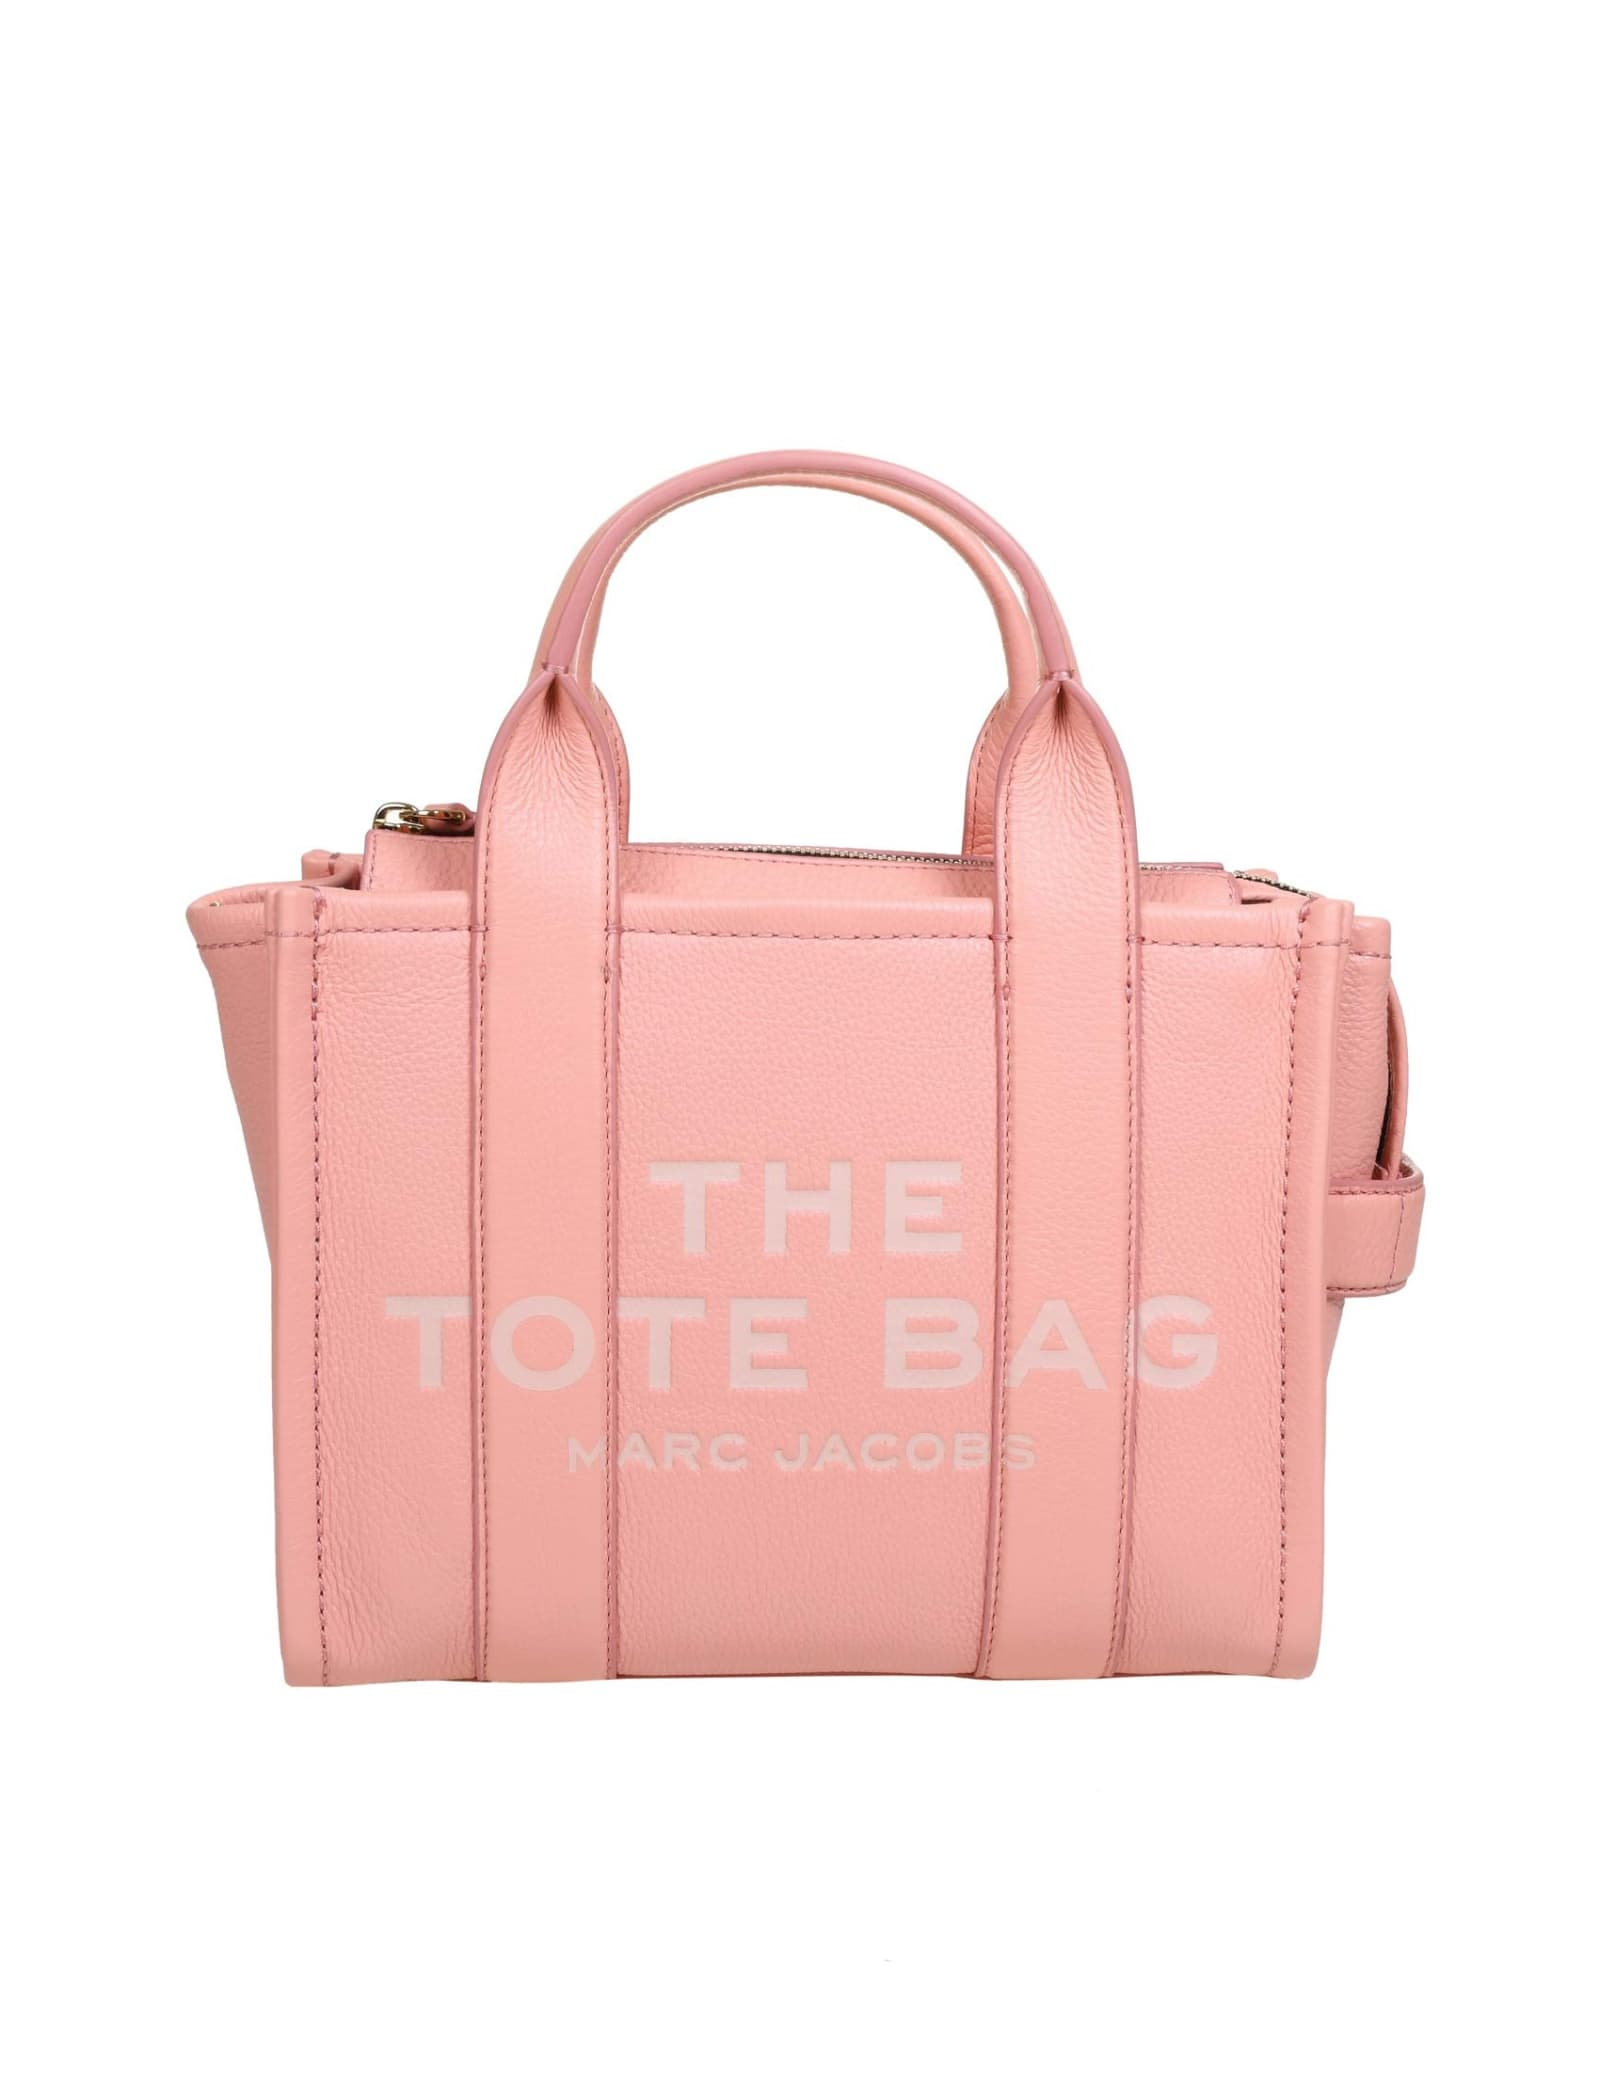 Marc Jacobs Bags THE TRAVELER TOTE MINI HANDBAG IN LEATHER